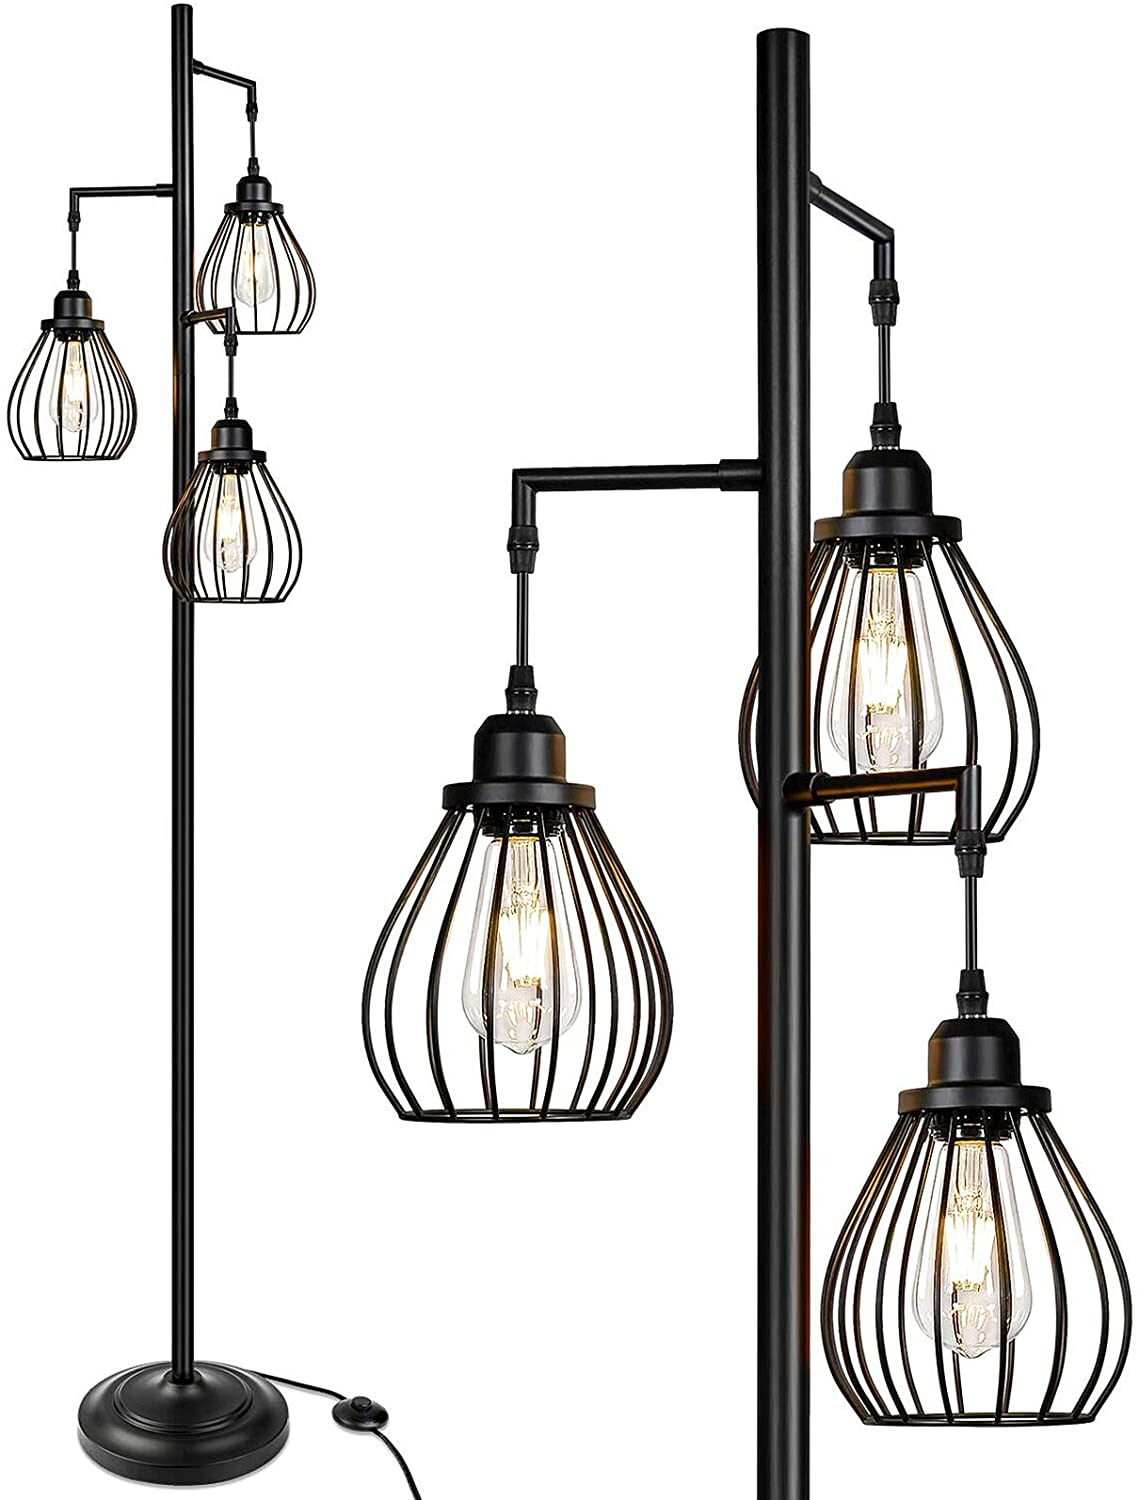 Industrial Floor Lamp for Living Room, Tree Floor Lamp with 3 Elegant Teardrop Cage Head& ST58 Edison LED Bulbs, Sturdy Base Tall Vintage Pole Light Great for Farmhouse Rustic Home Bedroom Office